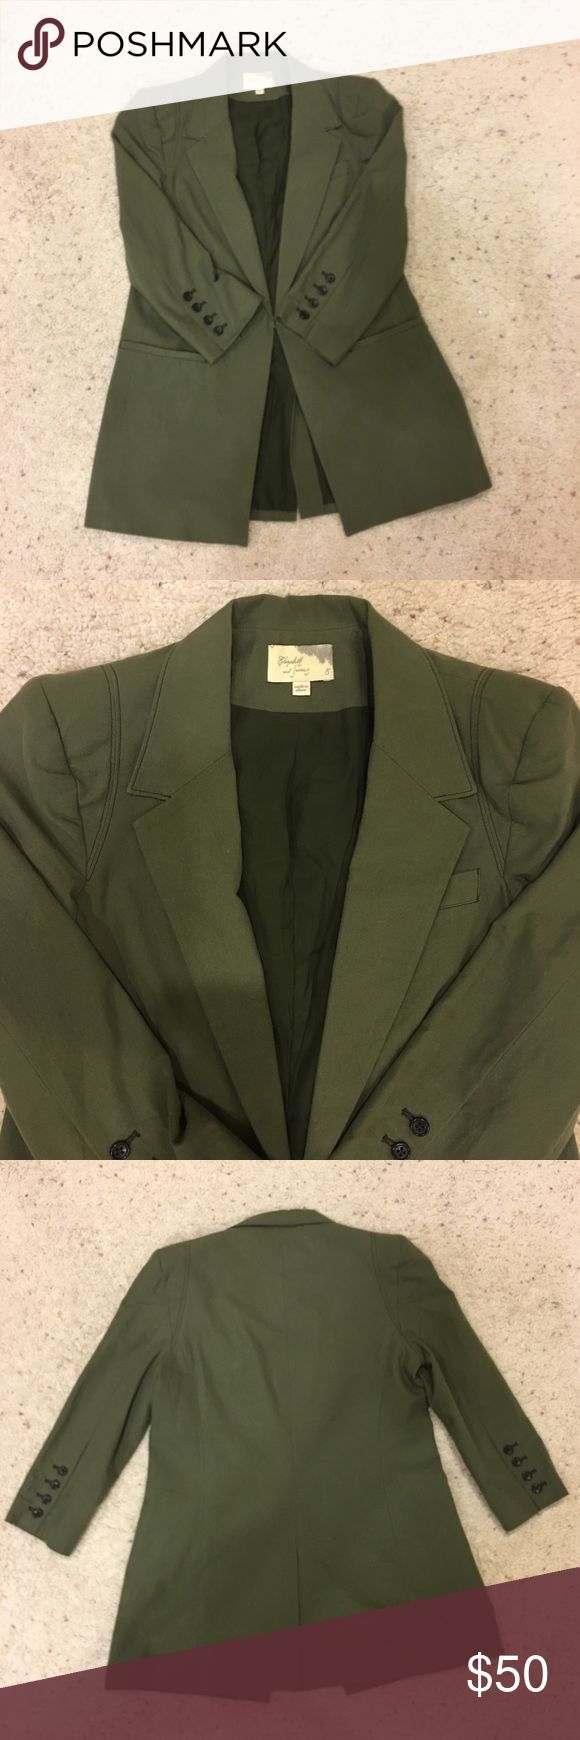 Elizabeth and James Olive Green Blazer 8 Like new. I only wore it a couple of times. 100% Cotton / Lining 100% silk. True to size Elizabeth and James Jackets & Coats Blazers